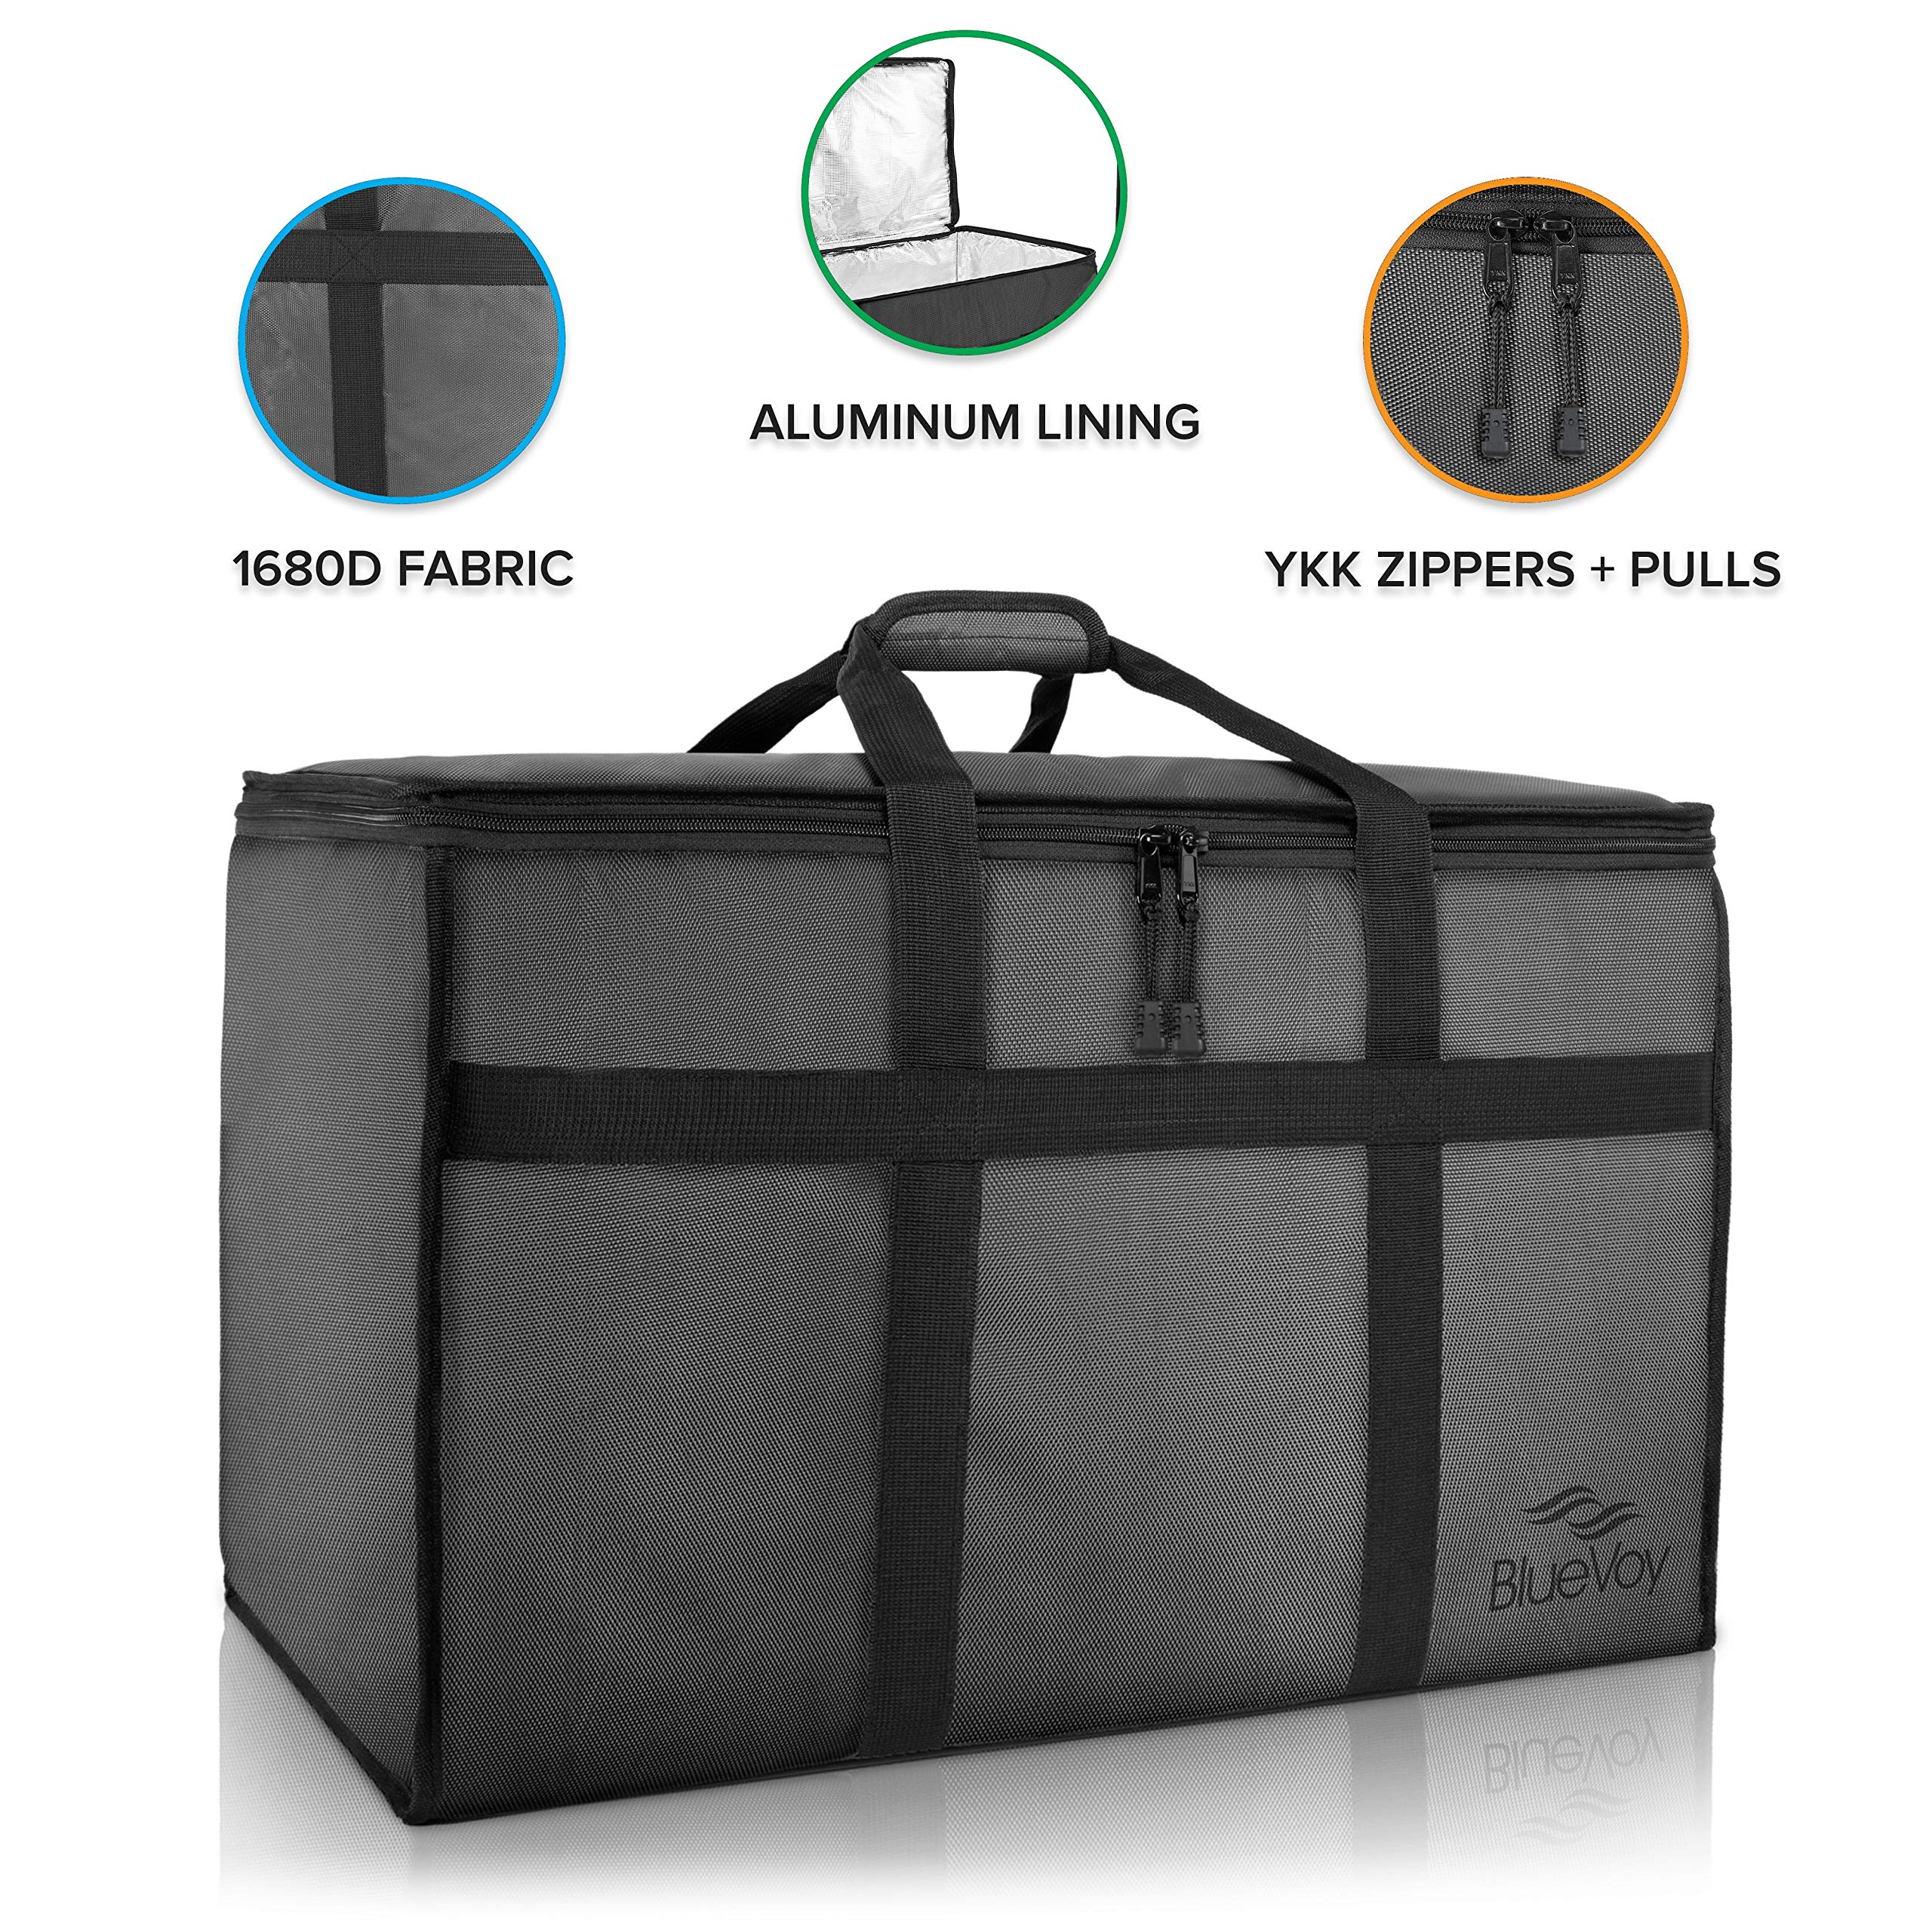 BlueVoy Insulated Food Delivery Bag - Premium Large Commercial Catering Bag for Food Transport - Hot and Cold Thermal Insulated Food Carrier with YKK No Snag Zippers - Ultra Durable Polyester Material by BlueVoy